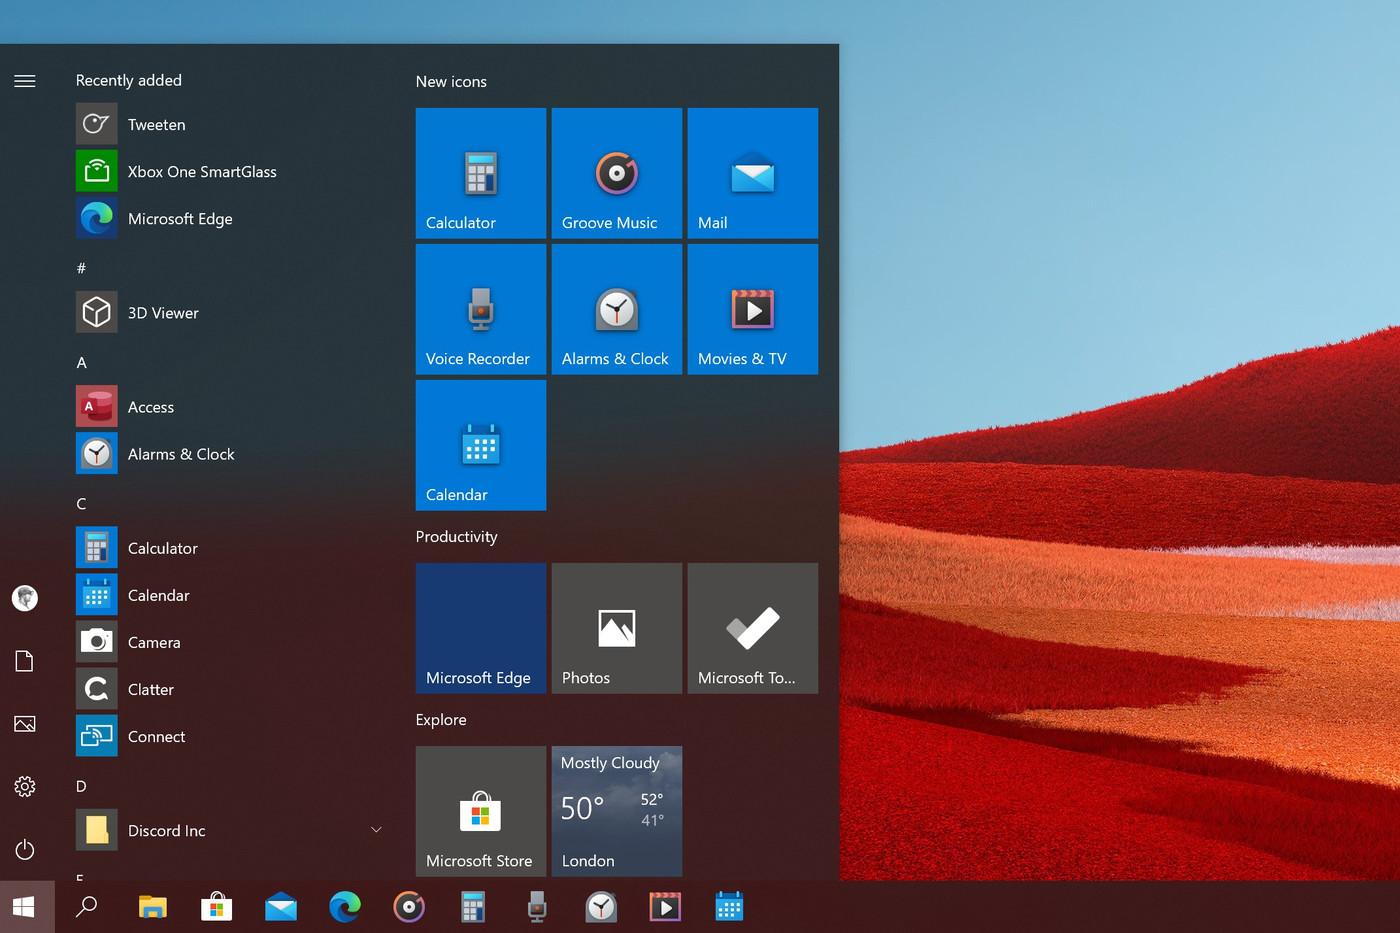 Microsoft rolls out colorful new Windows 10 icons - The Verge